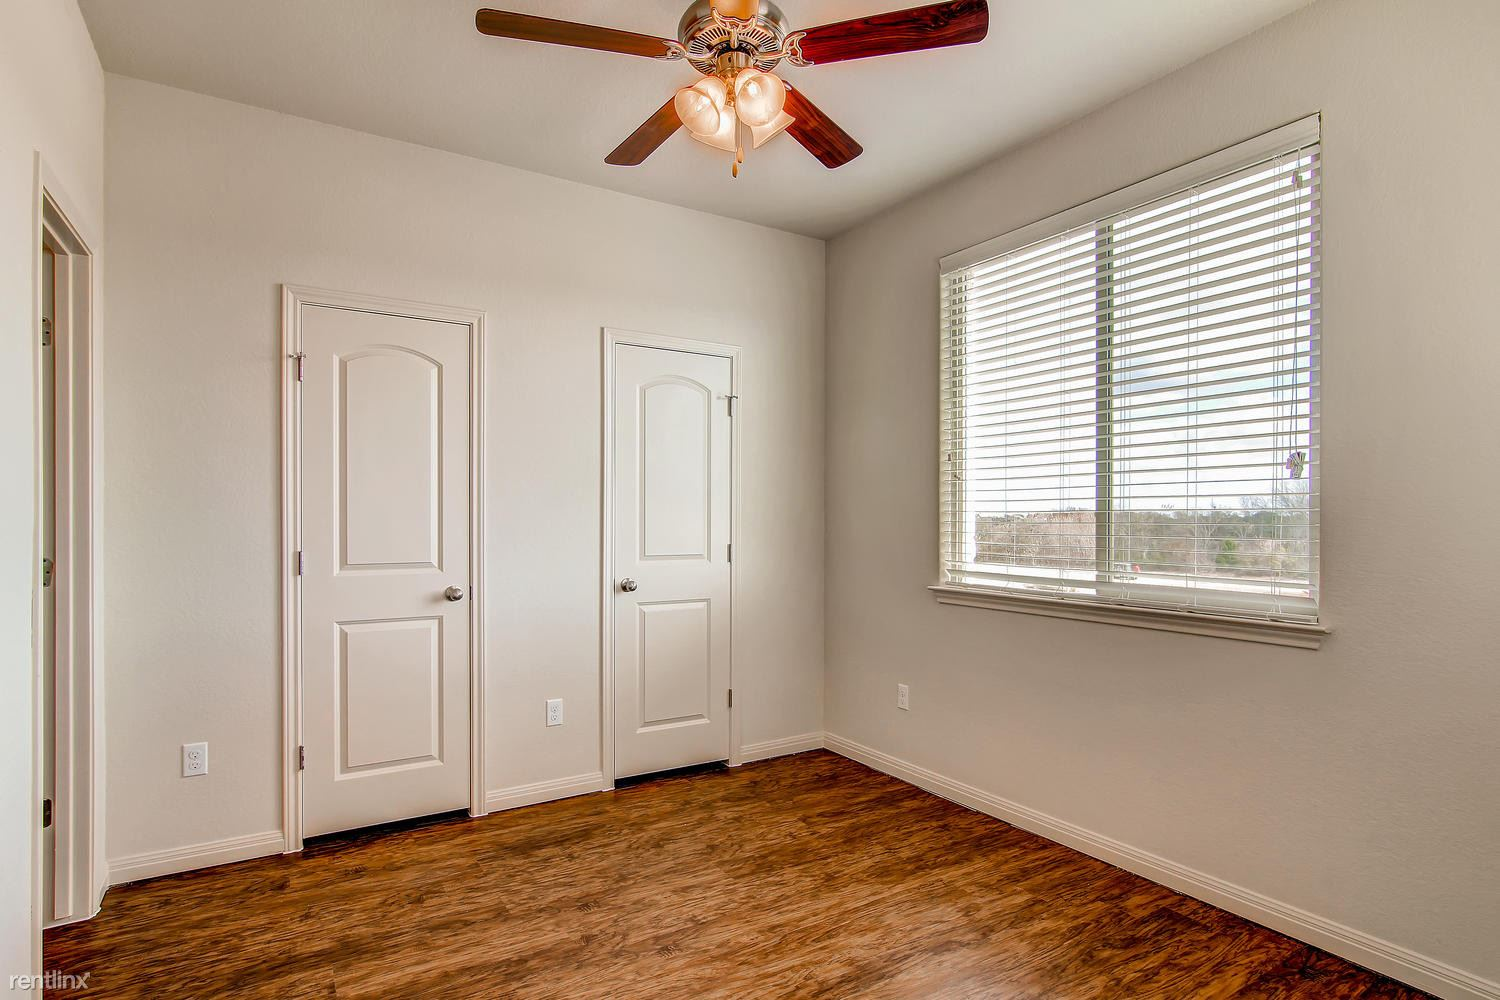 DoubleEagleTownhomes - 2 Bedroom - large-010-Double Eagle Townhomes 1  2-1500x1000-72dpi